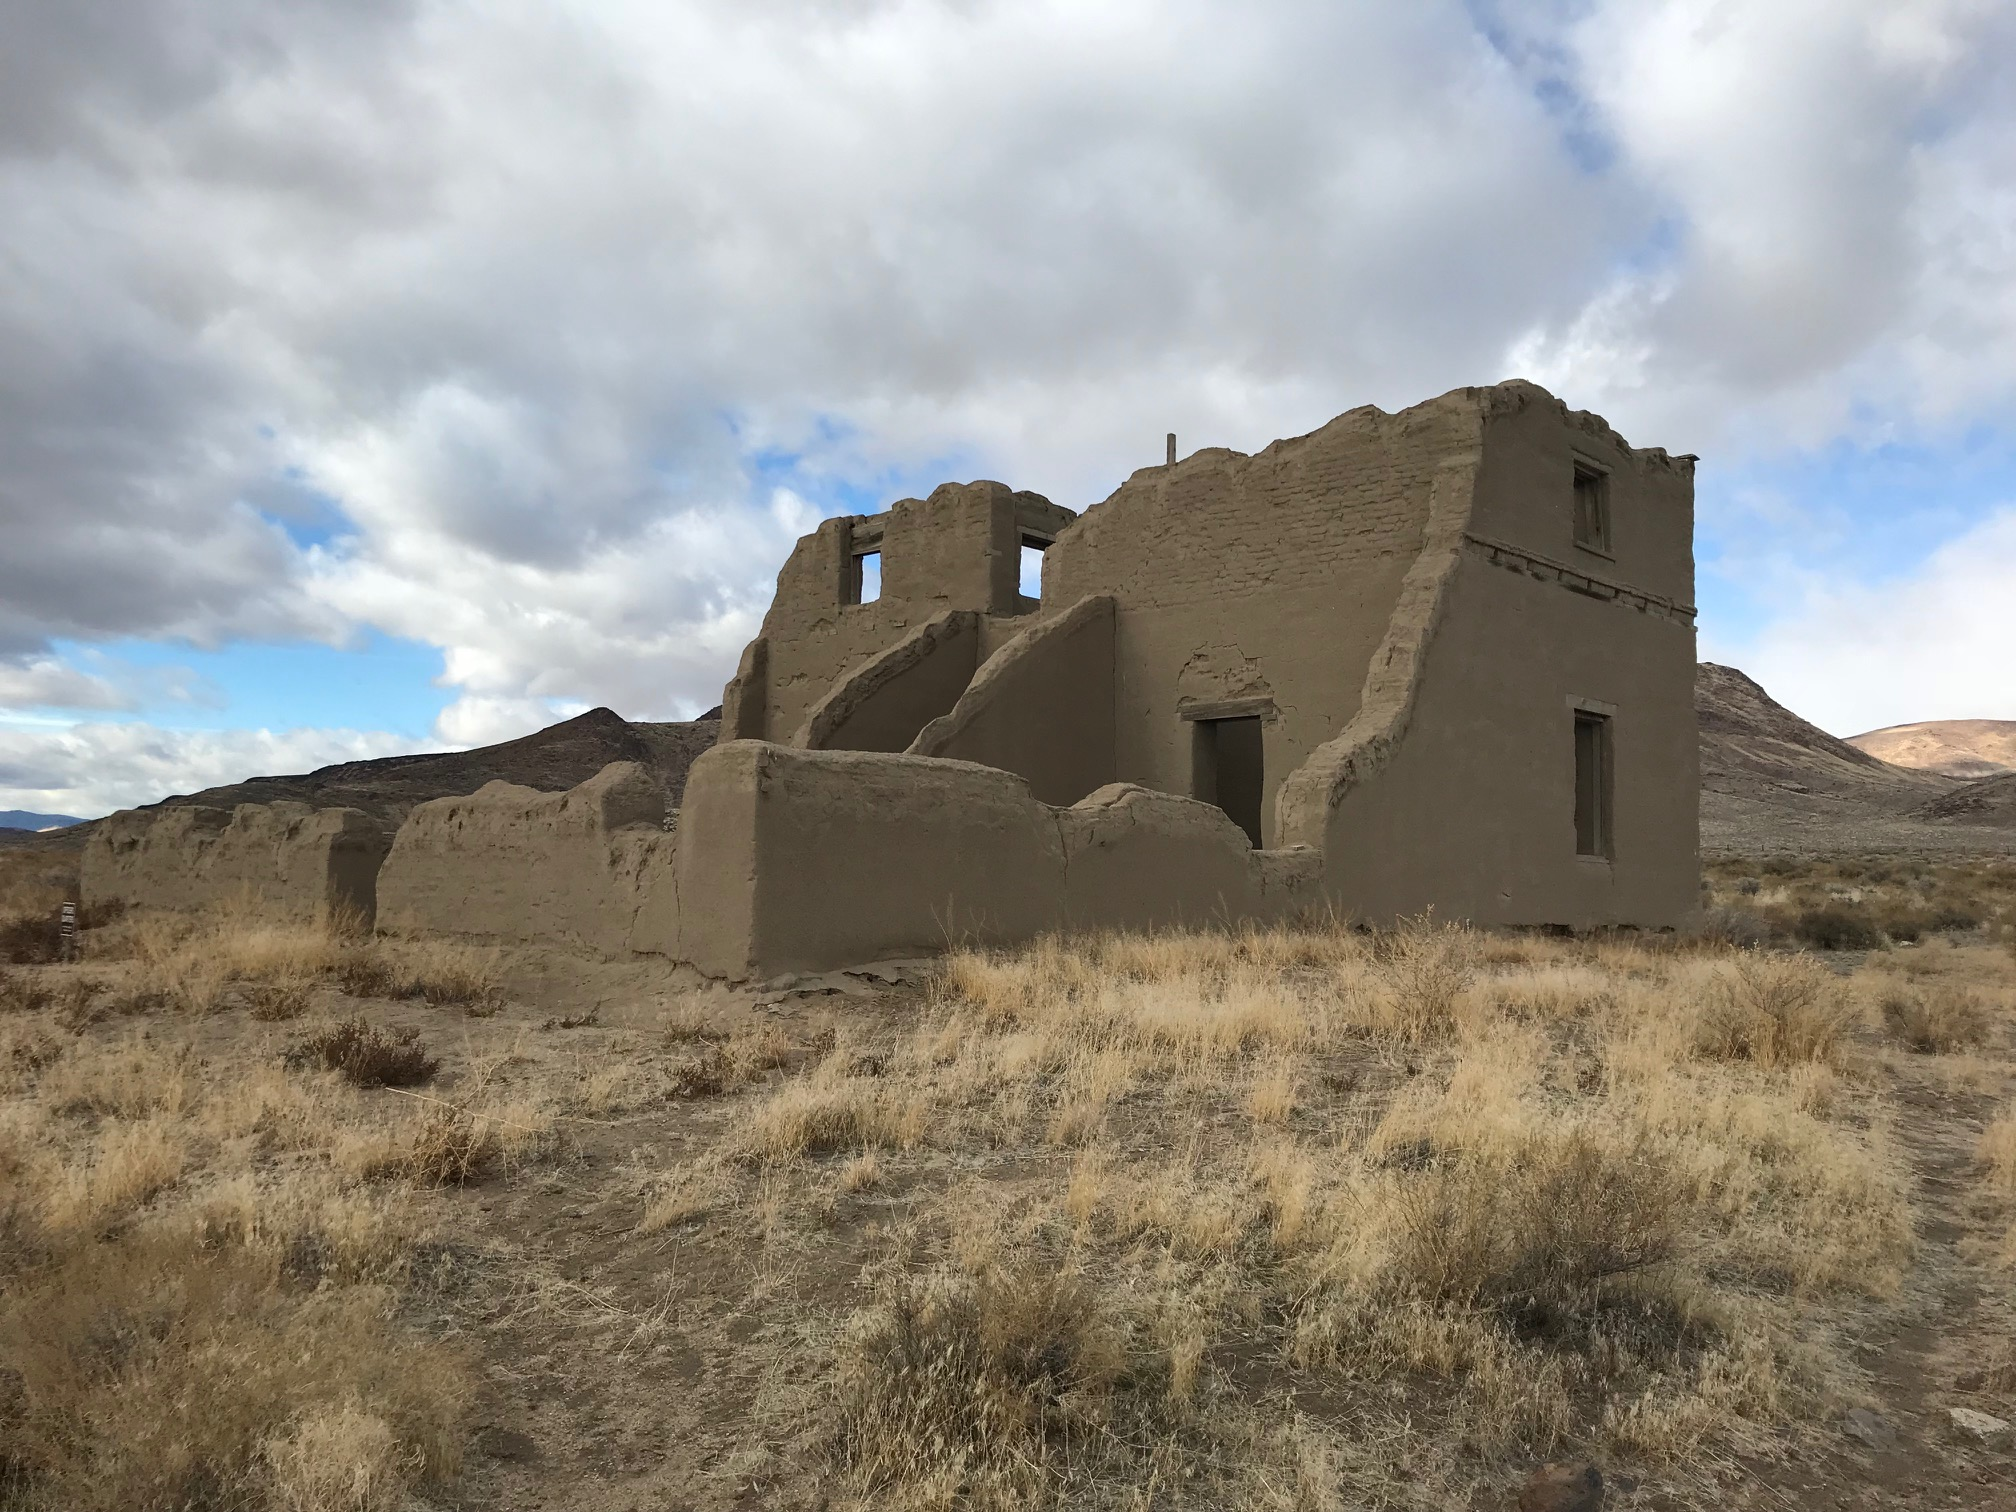 NV State Park Series – Fort Churchill